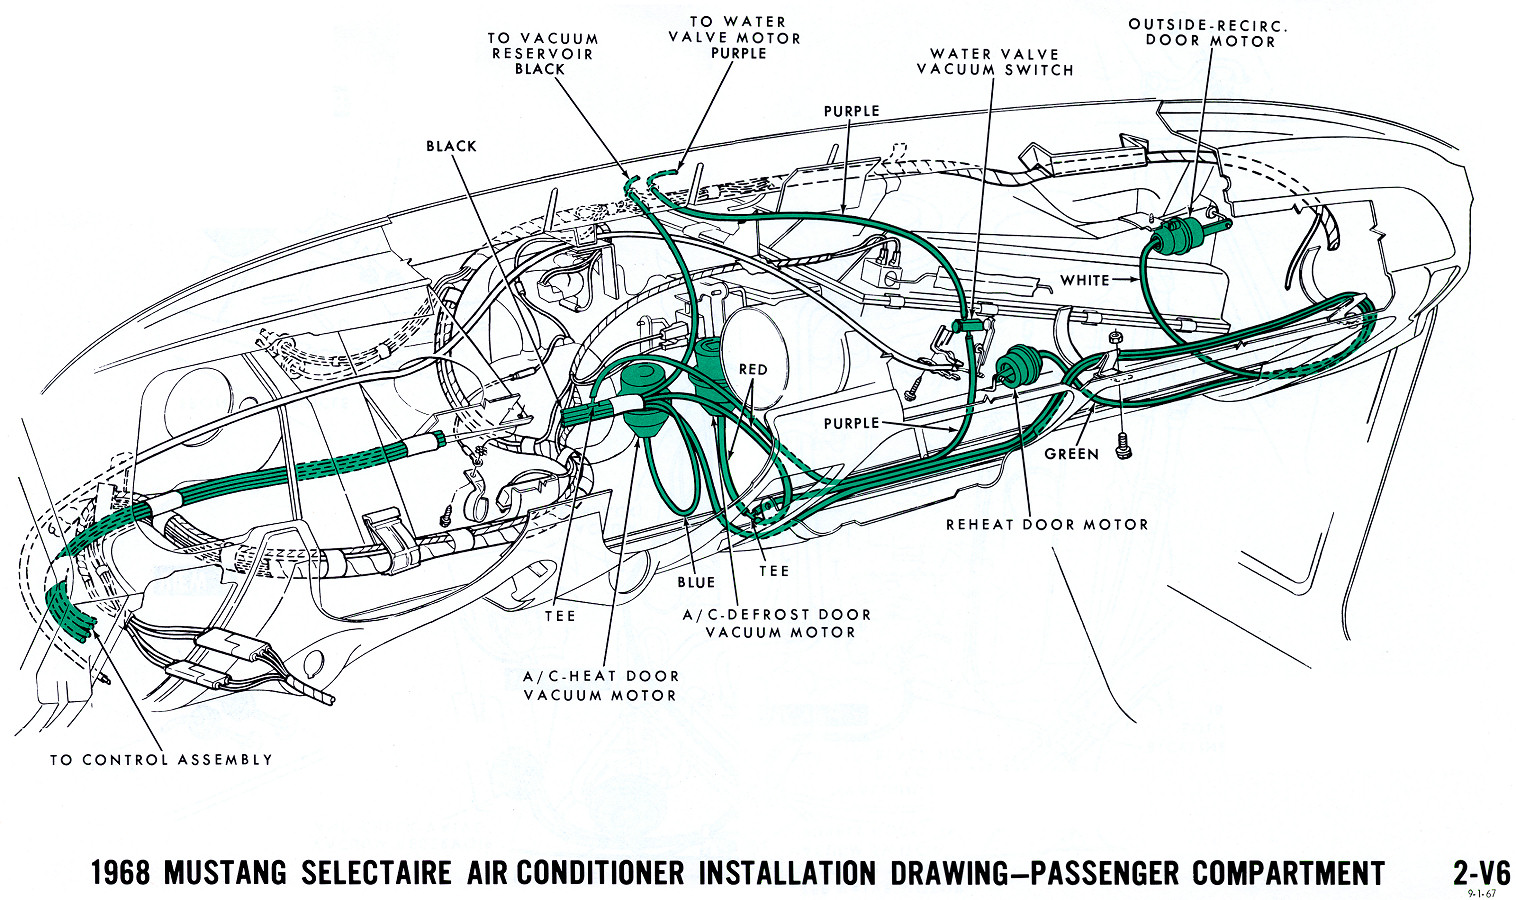 1968 Mustang Tach Wiring Diagram Library 67 Gt Tachometer Diagrams And Vacuum Schematics Average Joe Restoration 1969 Pontiac Gto